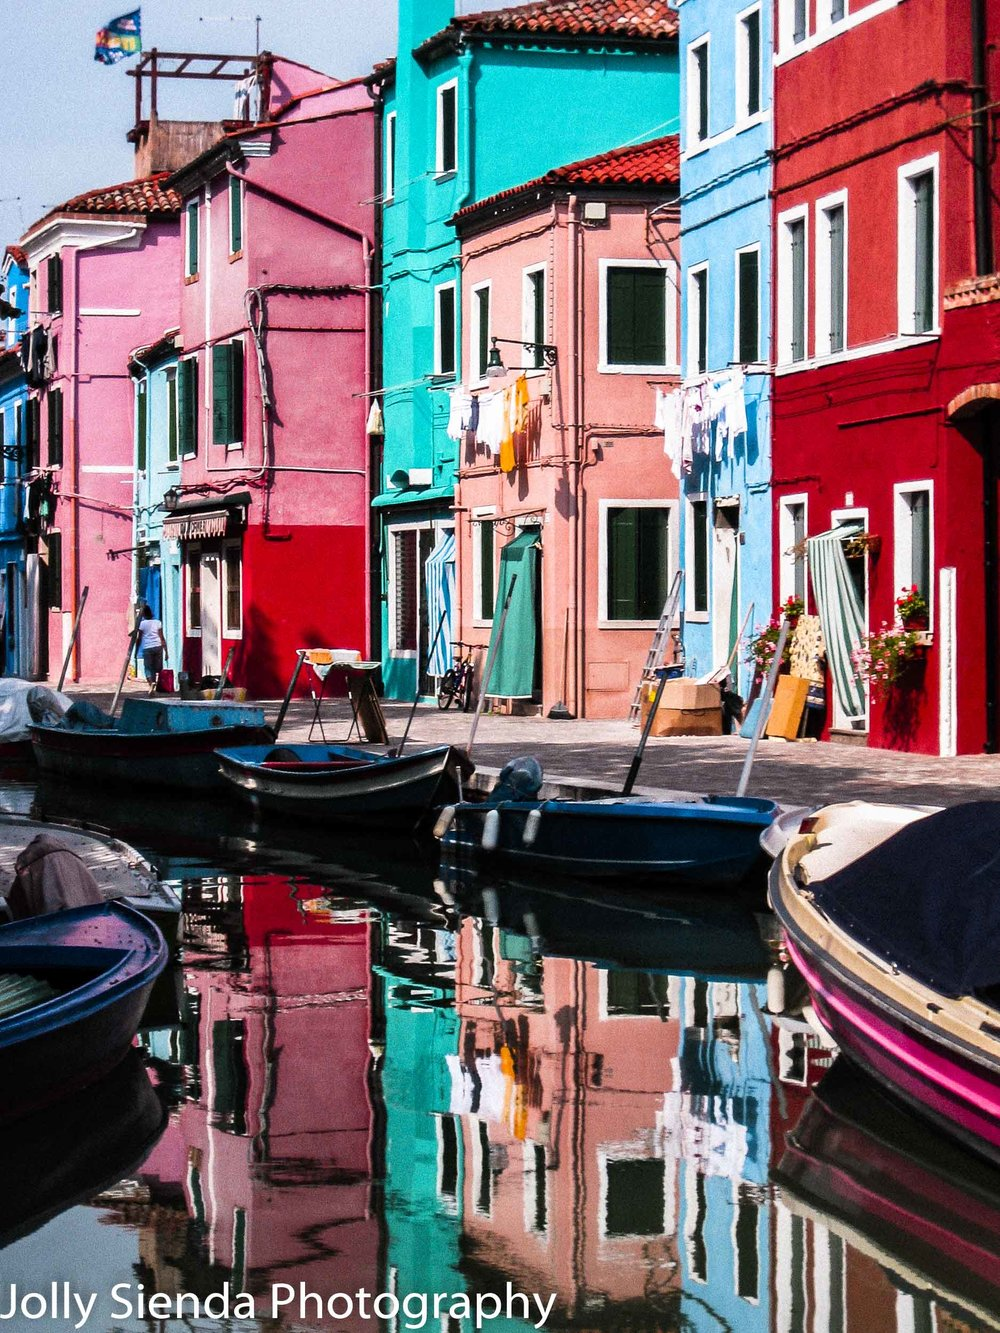 Burano's Colored Houses, on a canal, with colored boats and a re